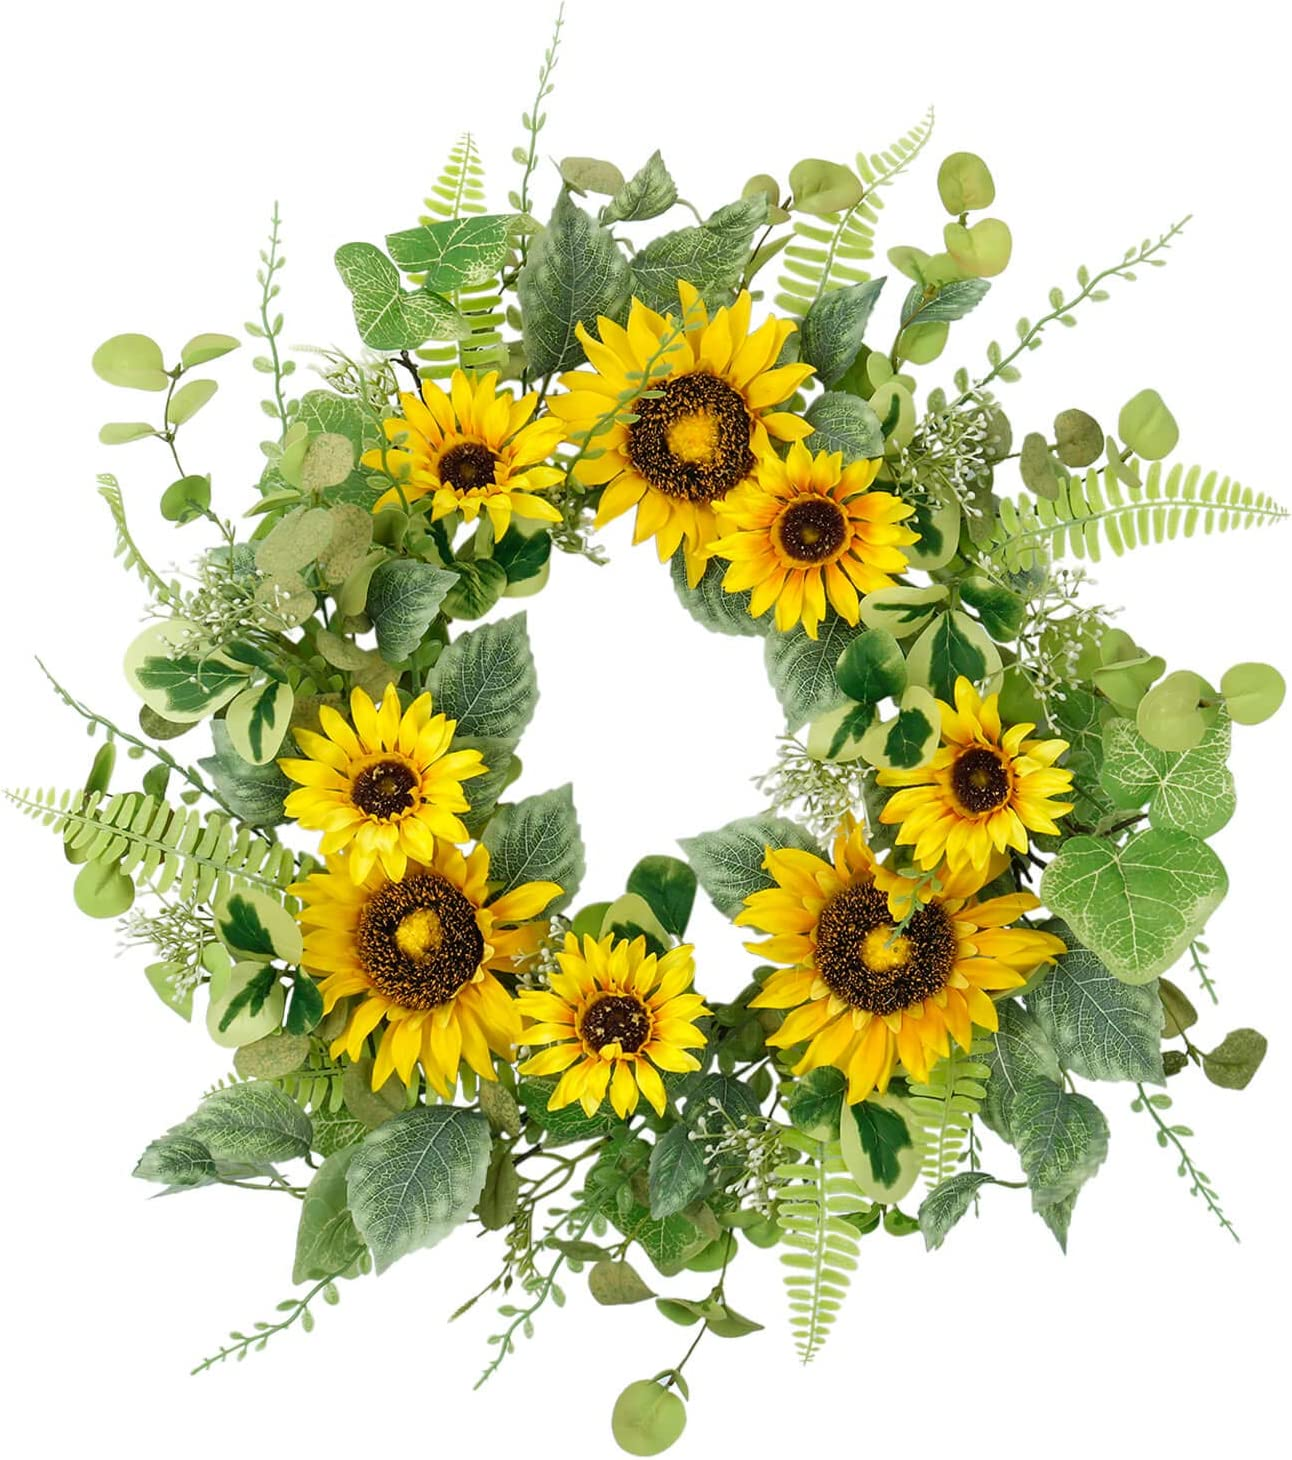 Cloris Art Wreath for Front Door, 22 Inch Artificial Sunflower Fern Wreath for Home Office Party Holiday, Spring and Summer Farmhouse Decor